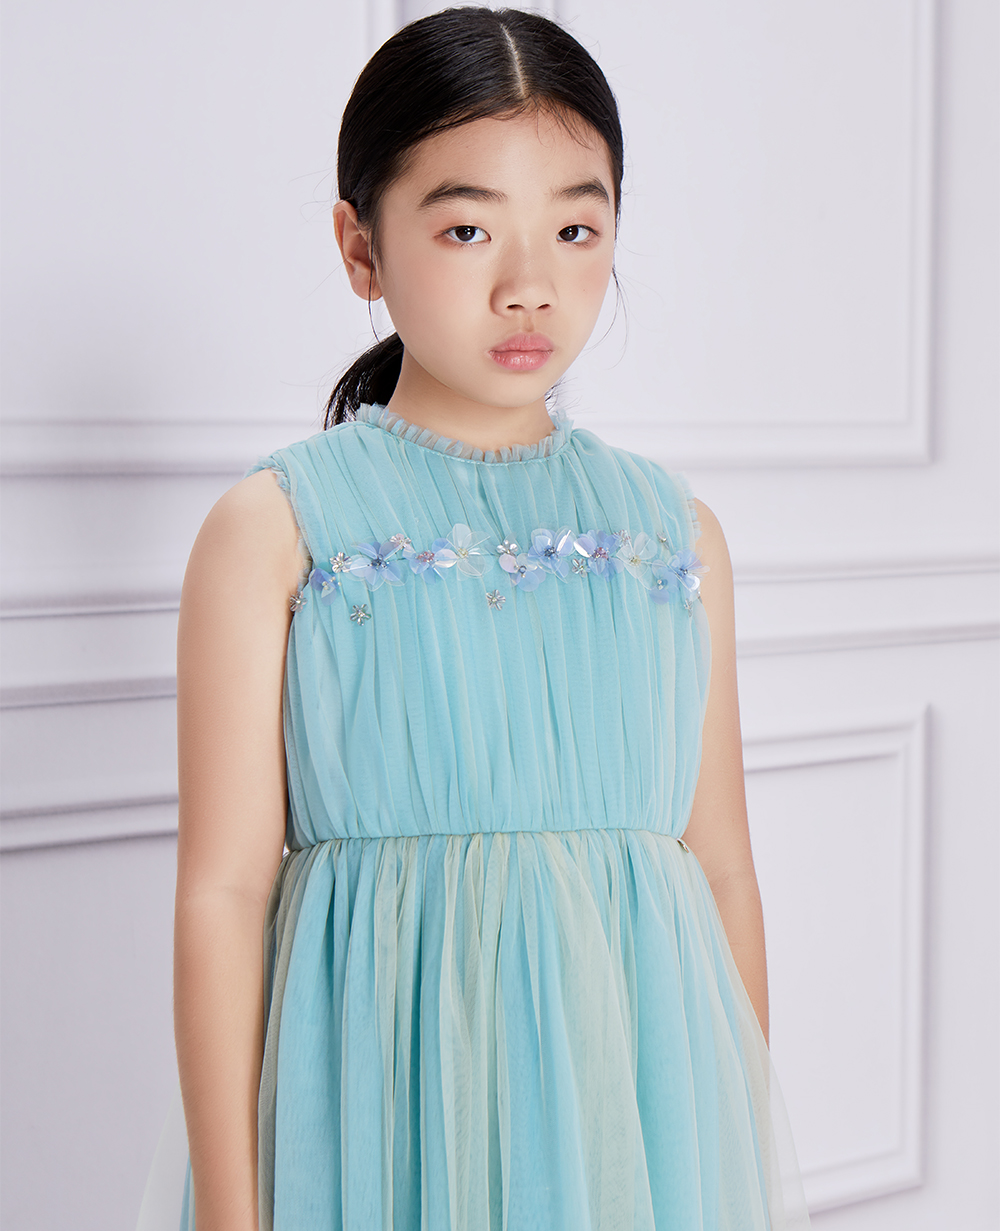 Aqua Tulle Lace Dress